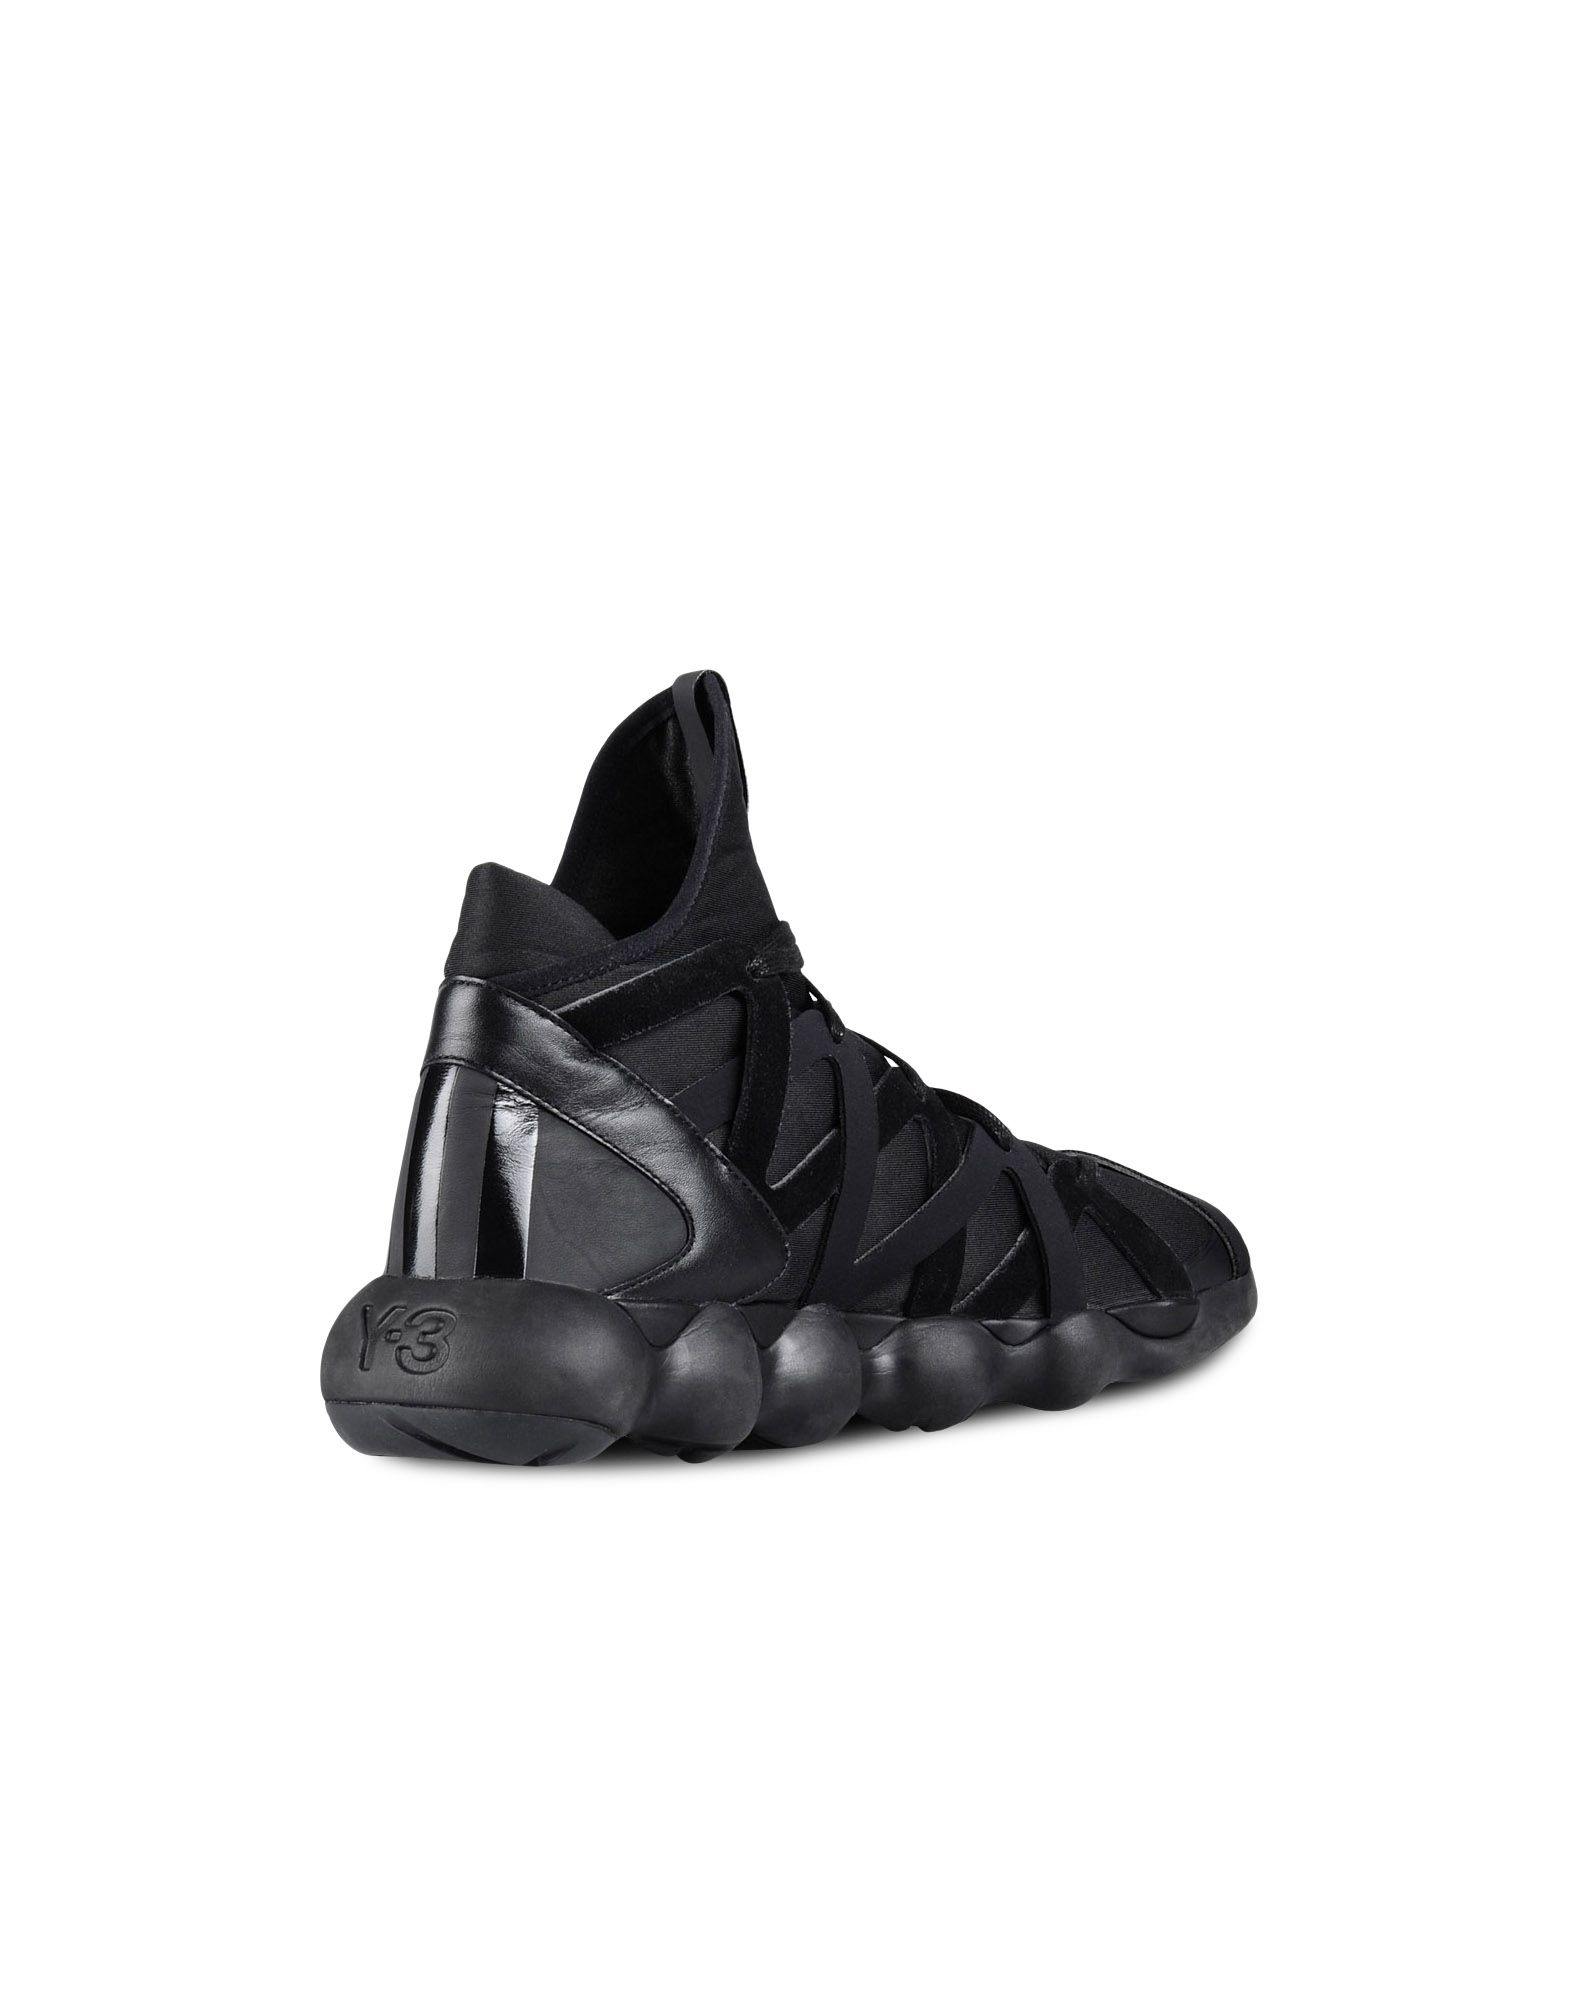 7b5e94780a249 ... Y-3 Y-3 KYUJO HIGH High-top sneakers Man ...